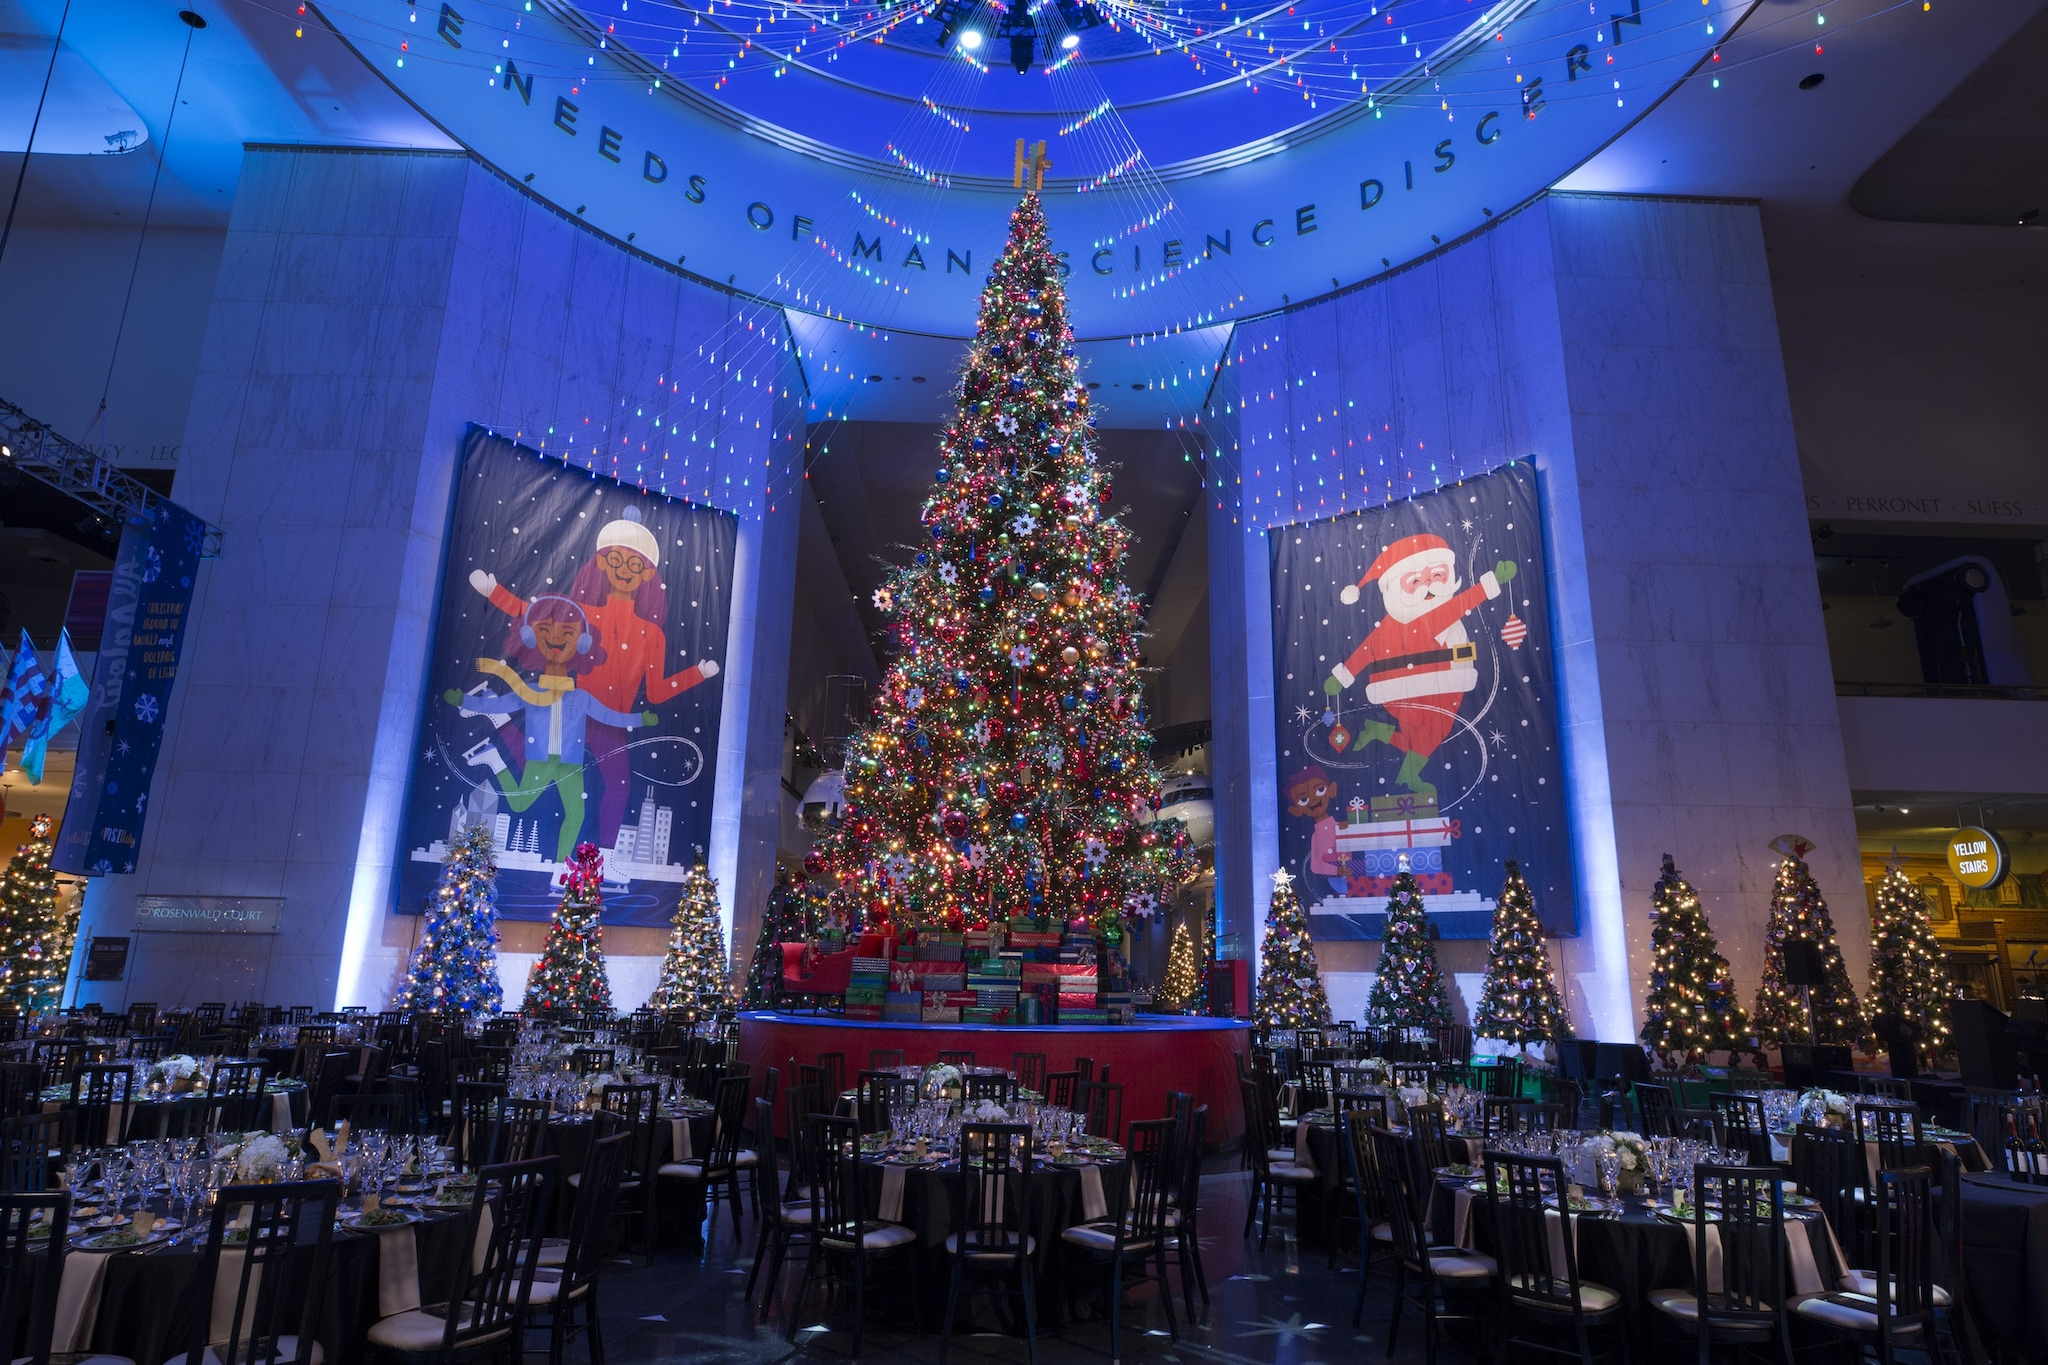 Chicago Christmas Tree Lighting 2019.22 Best Holiday Party Venues In Chicago For 2019 Partyslate